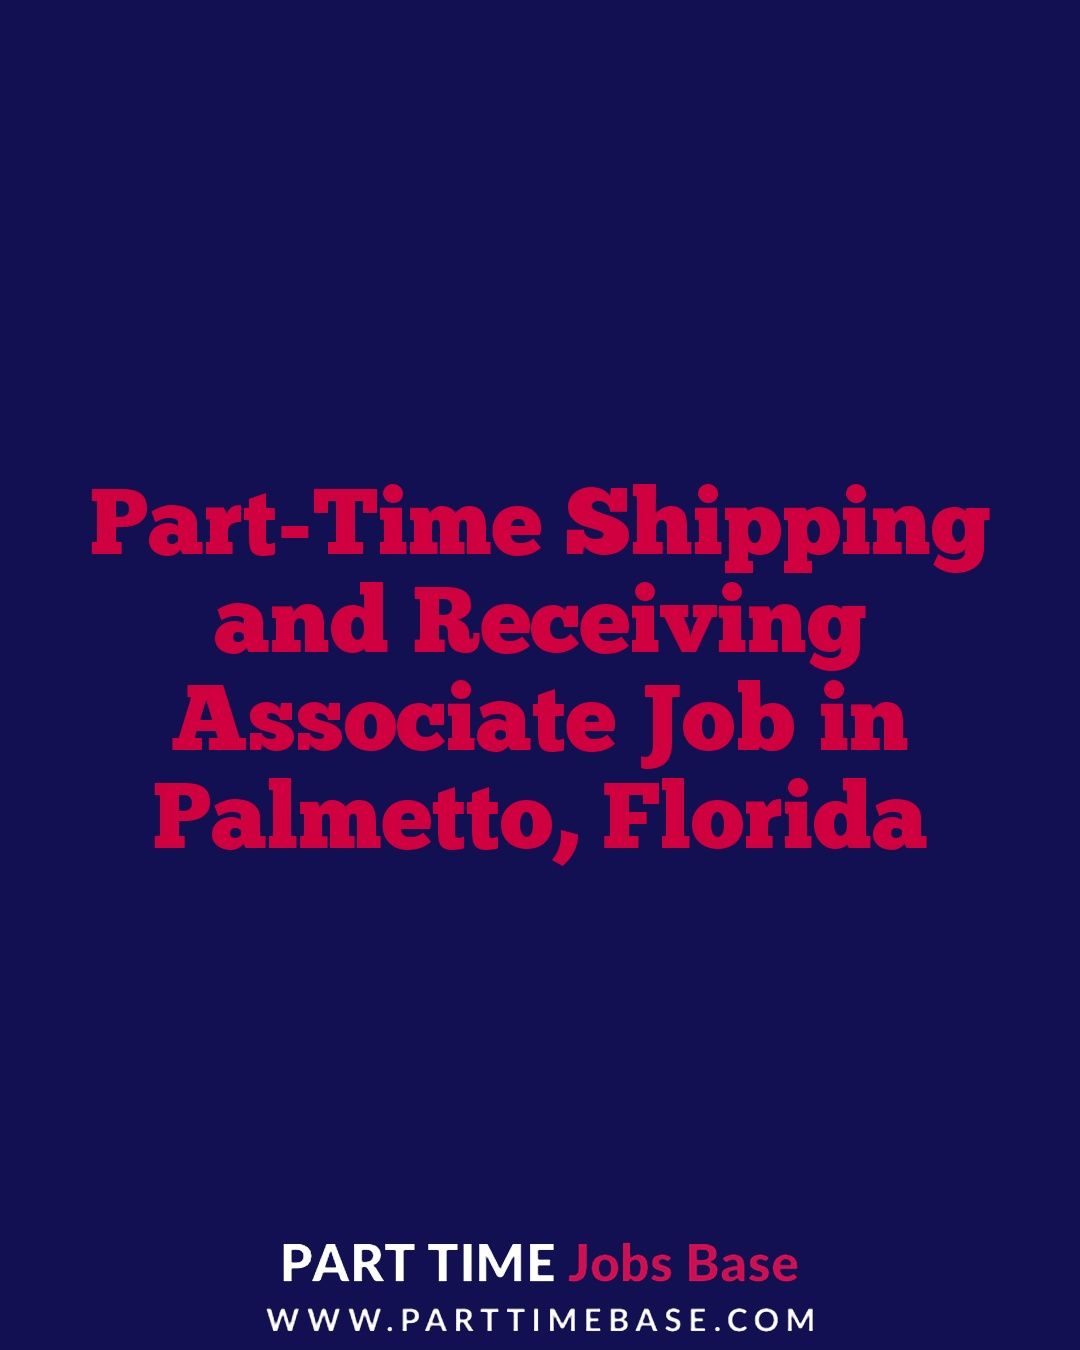 PartTime Shipping and Receiving Associate Job in Palmetto